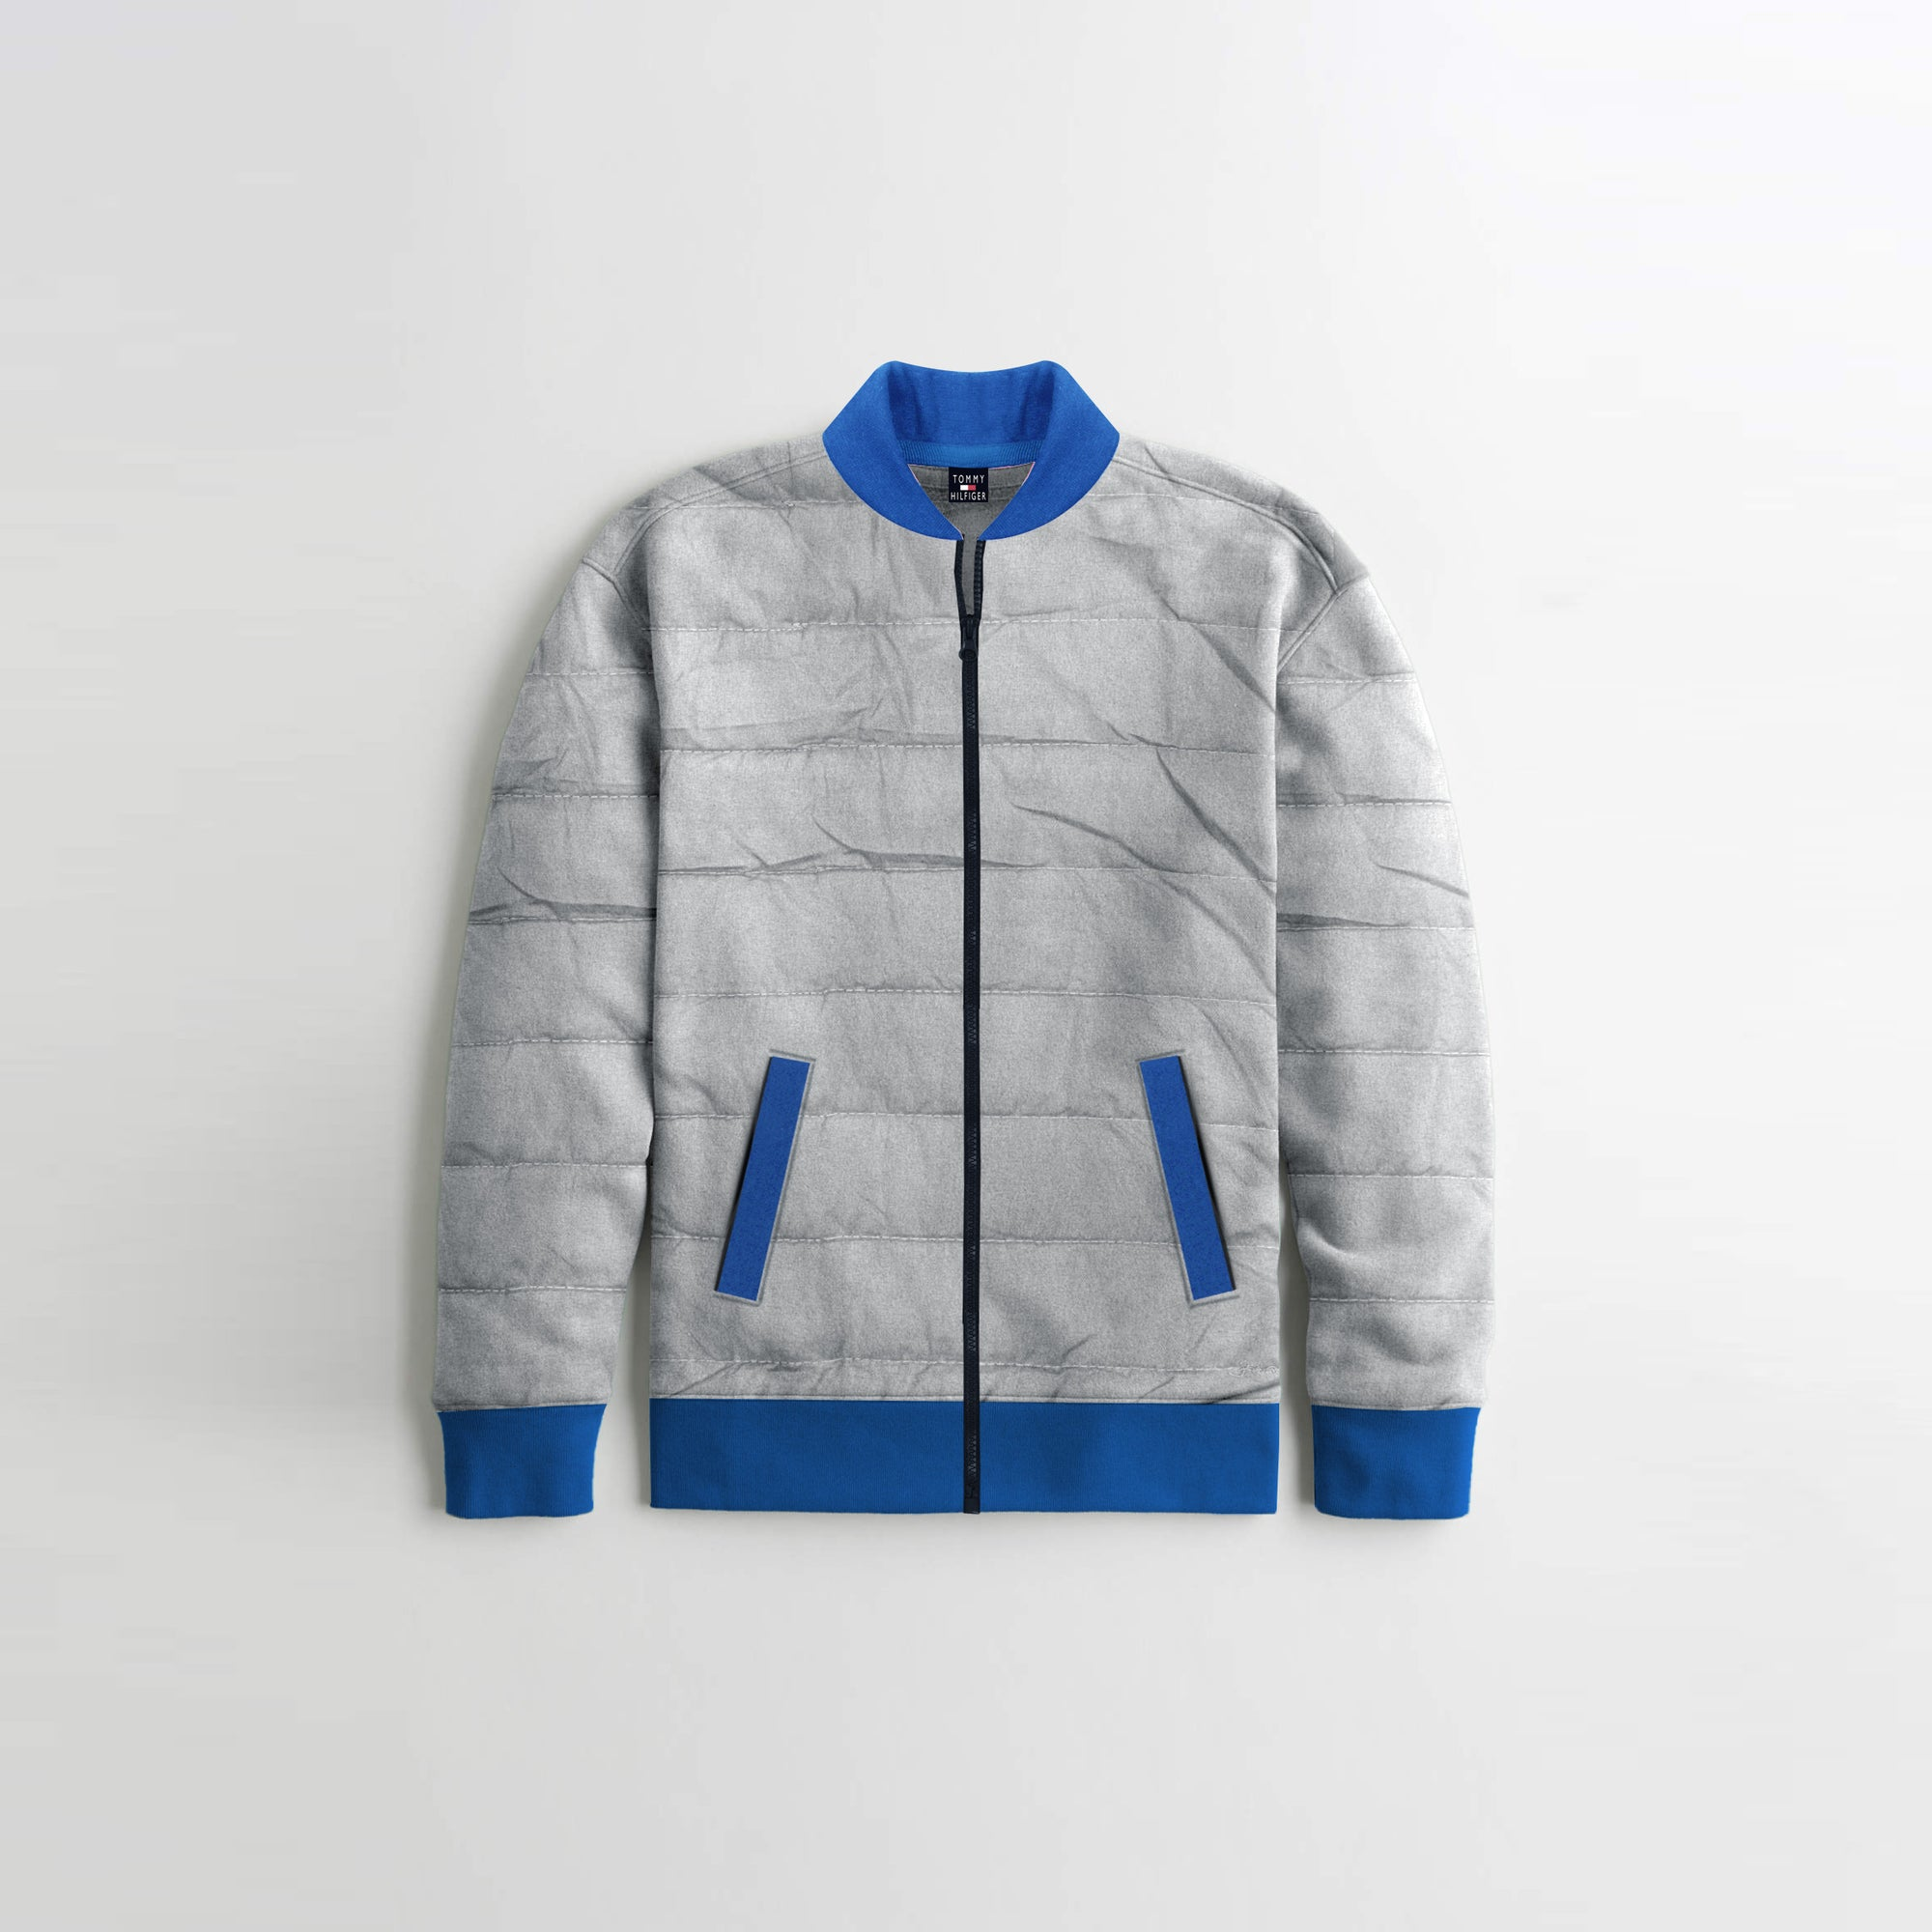 TH Quilted Zipper Baseball Jacket For Kids-Light Grey With Light Blue Contrast-NA12121